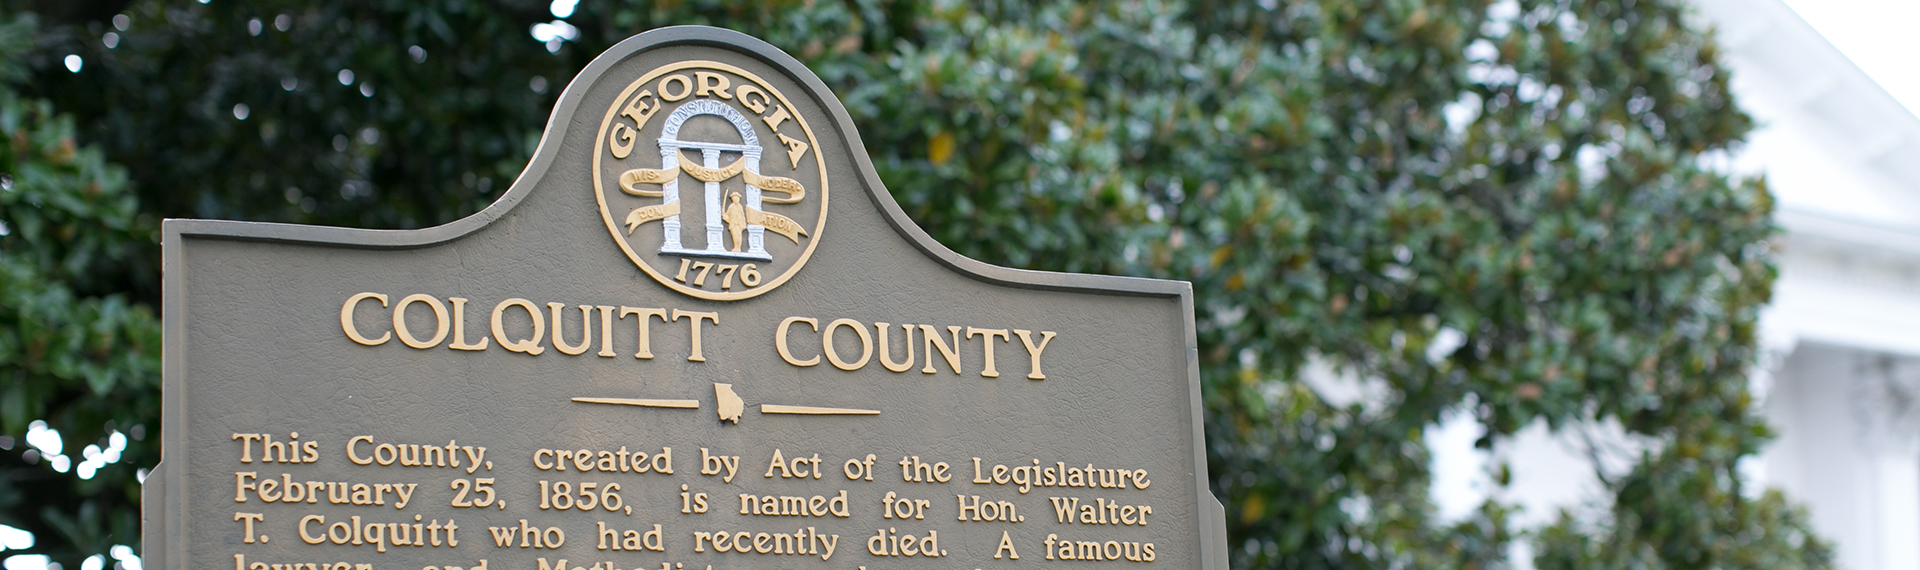 Colquitt County benefits from Archway Partnership